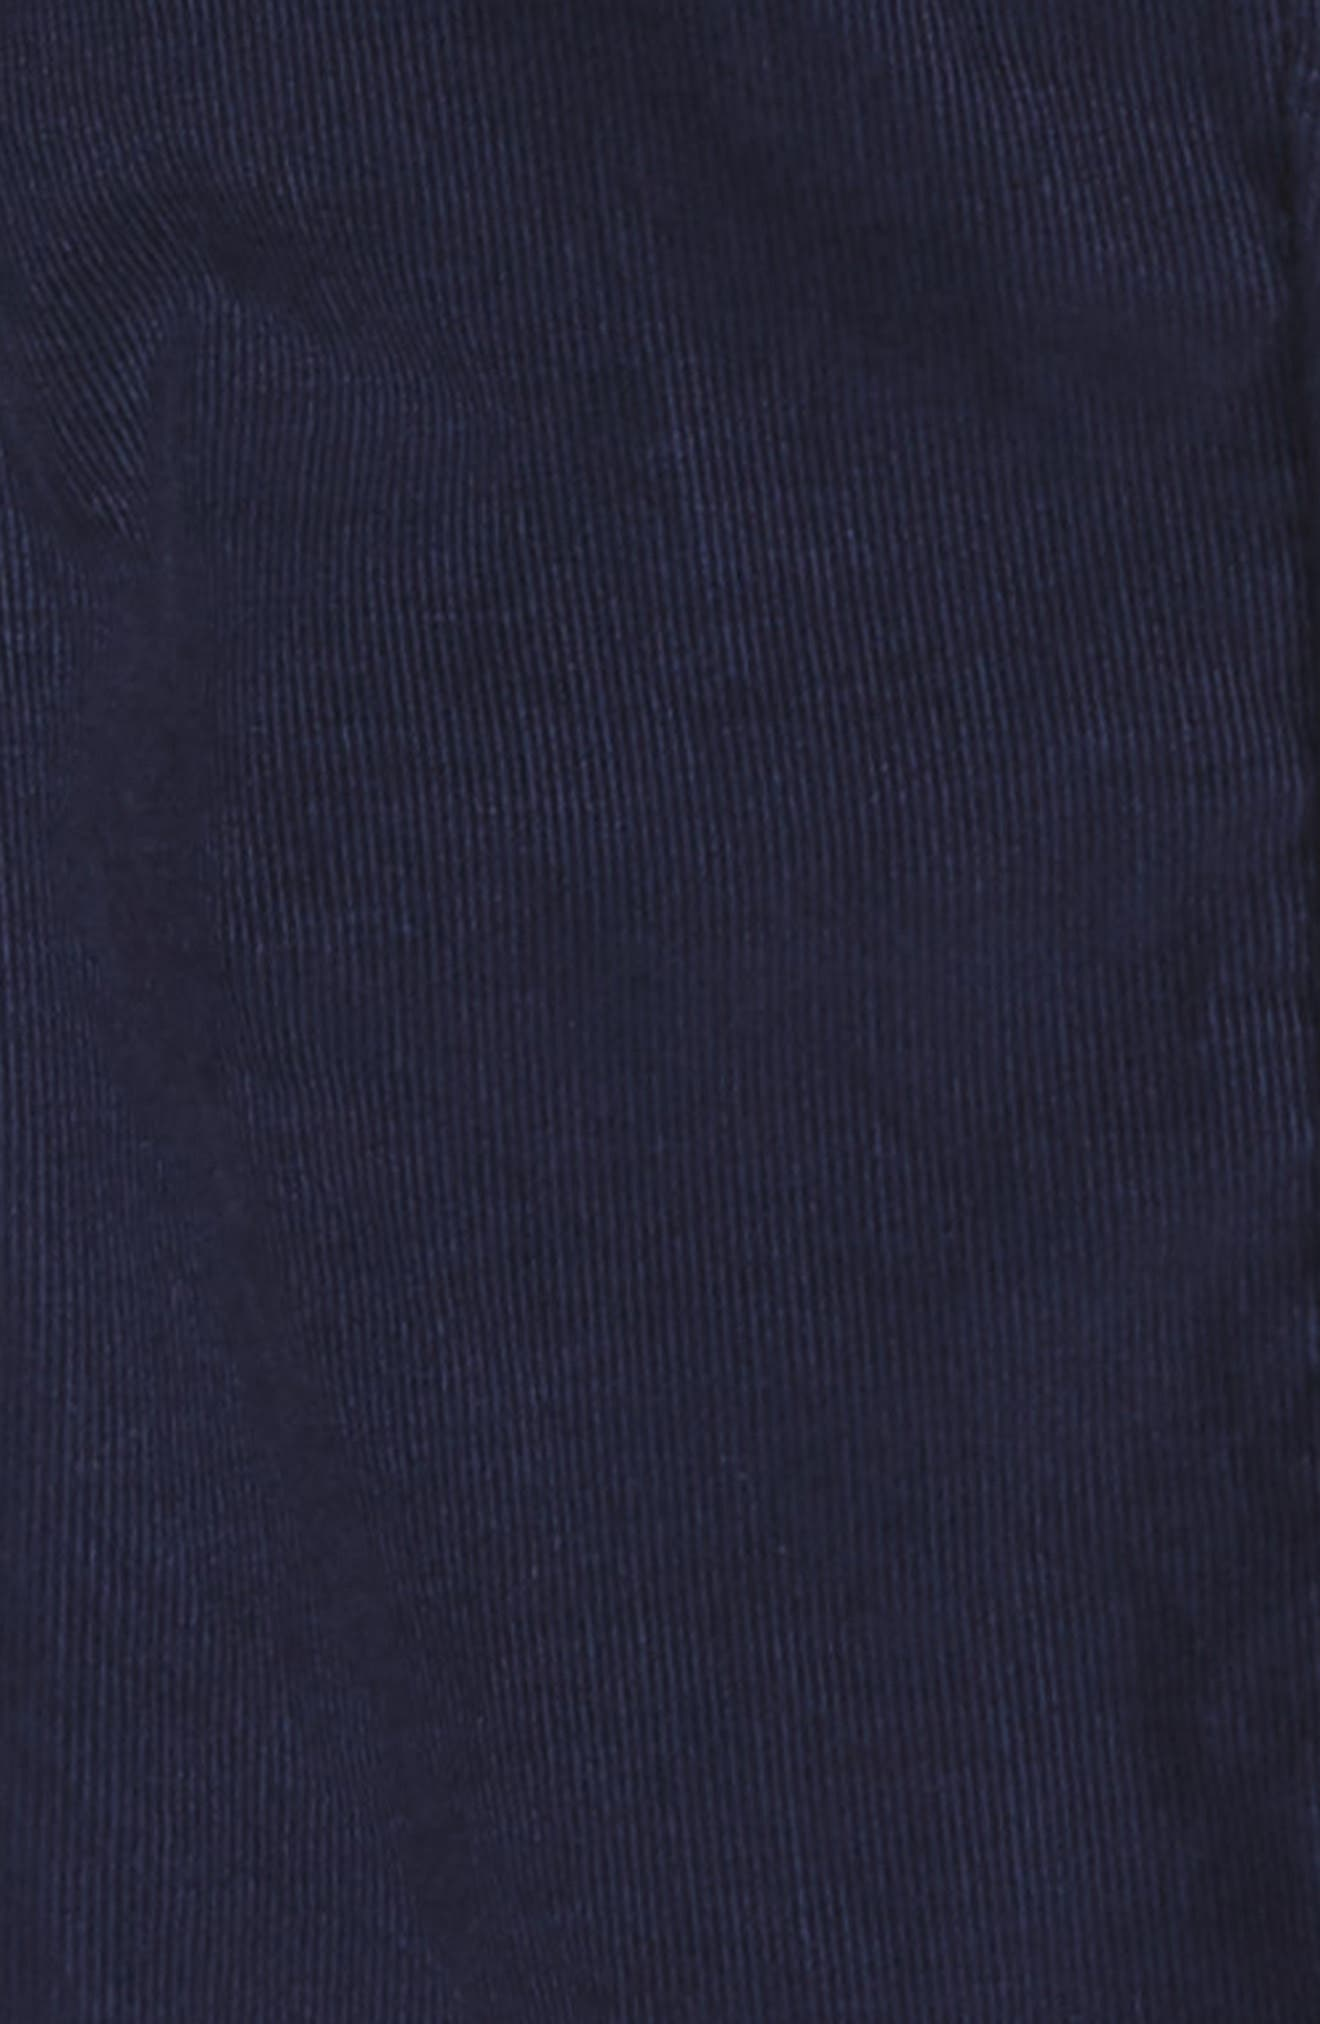 Ethan Corduroy Pants,                             Alternate thumbnail 3, color,                             410